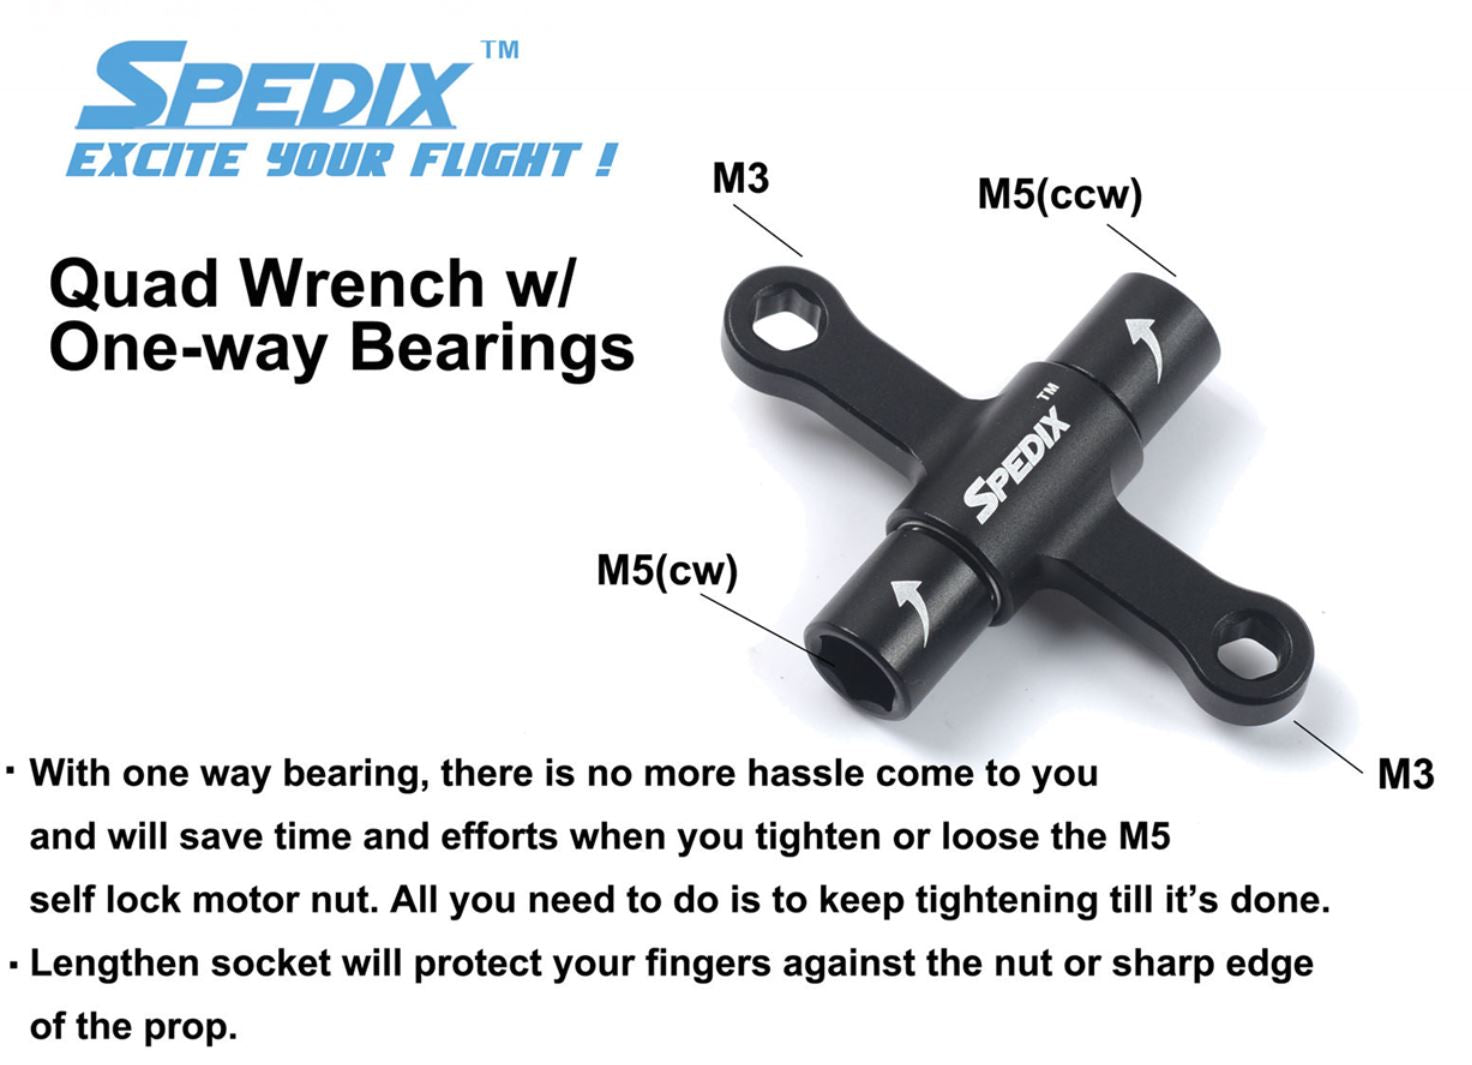 Spedix Quad Wrench